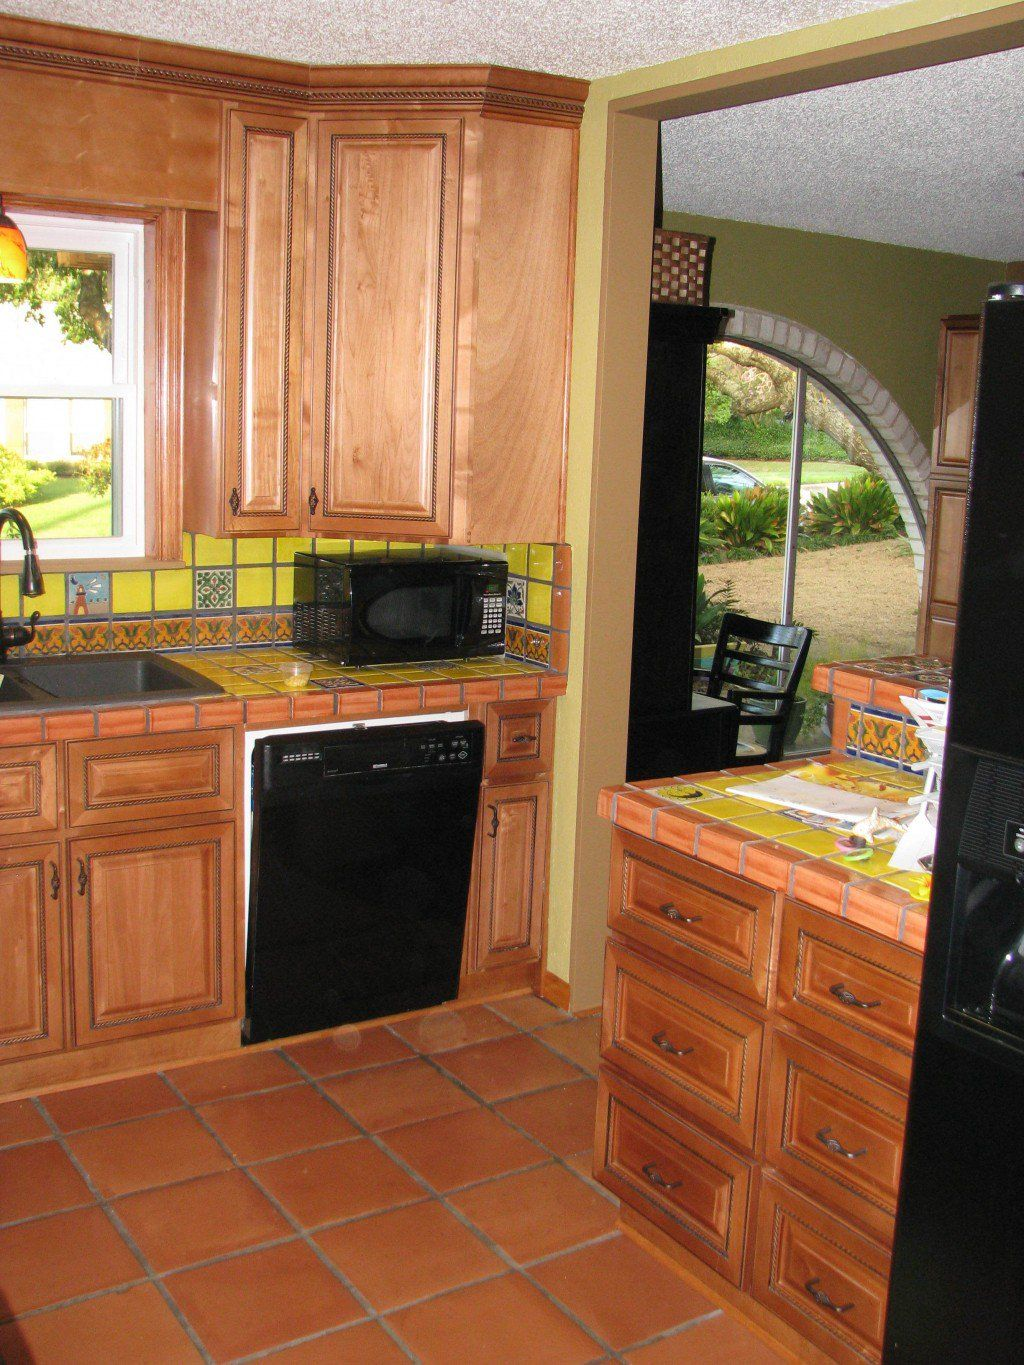 Rta Cabinet Reviews Ready To Assemble Vs Home Depot Kitchen Cabinets Home Depot Affordable Kitchen Remodeling Home Depot Cabinets